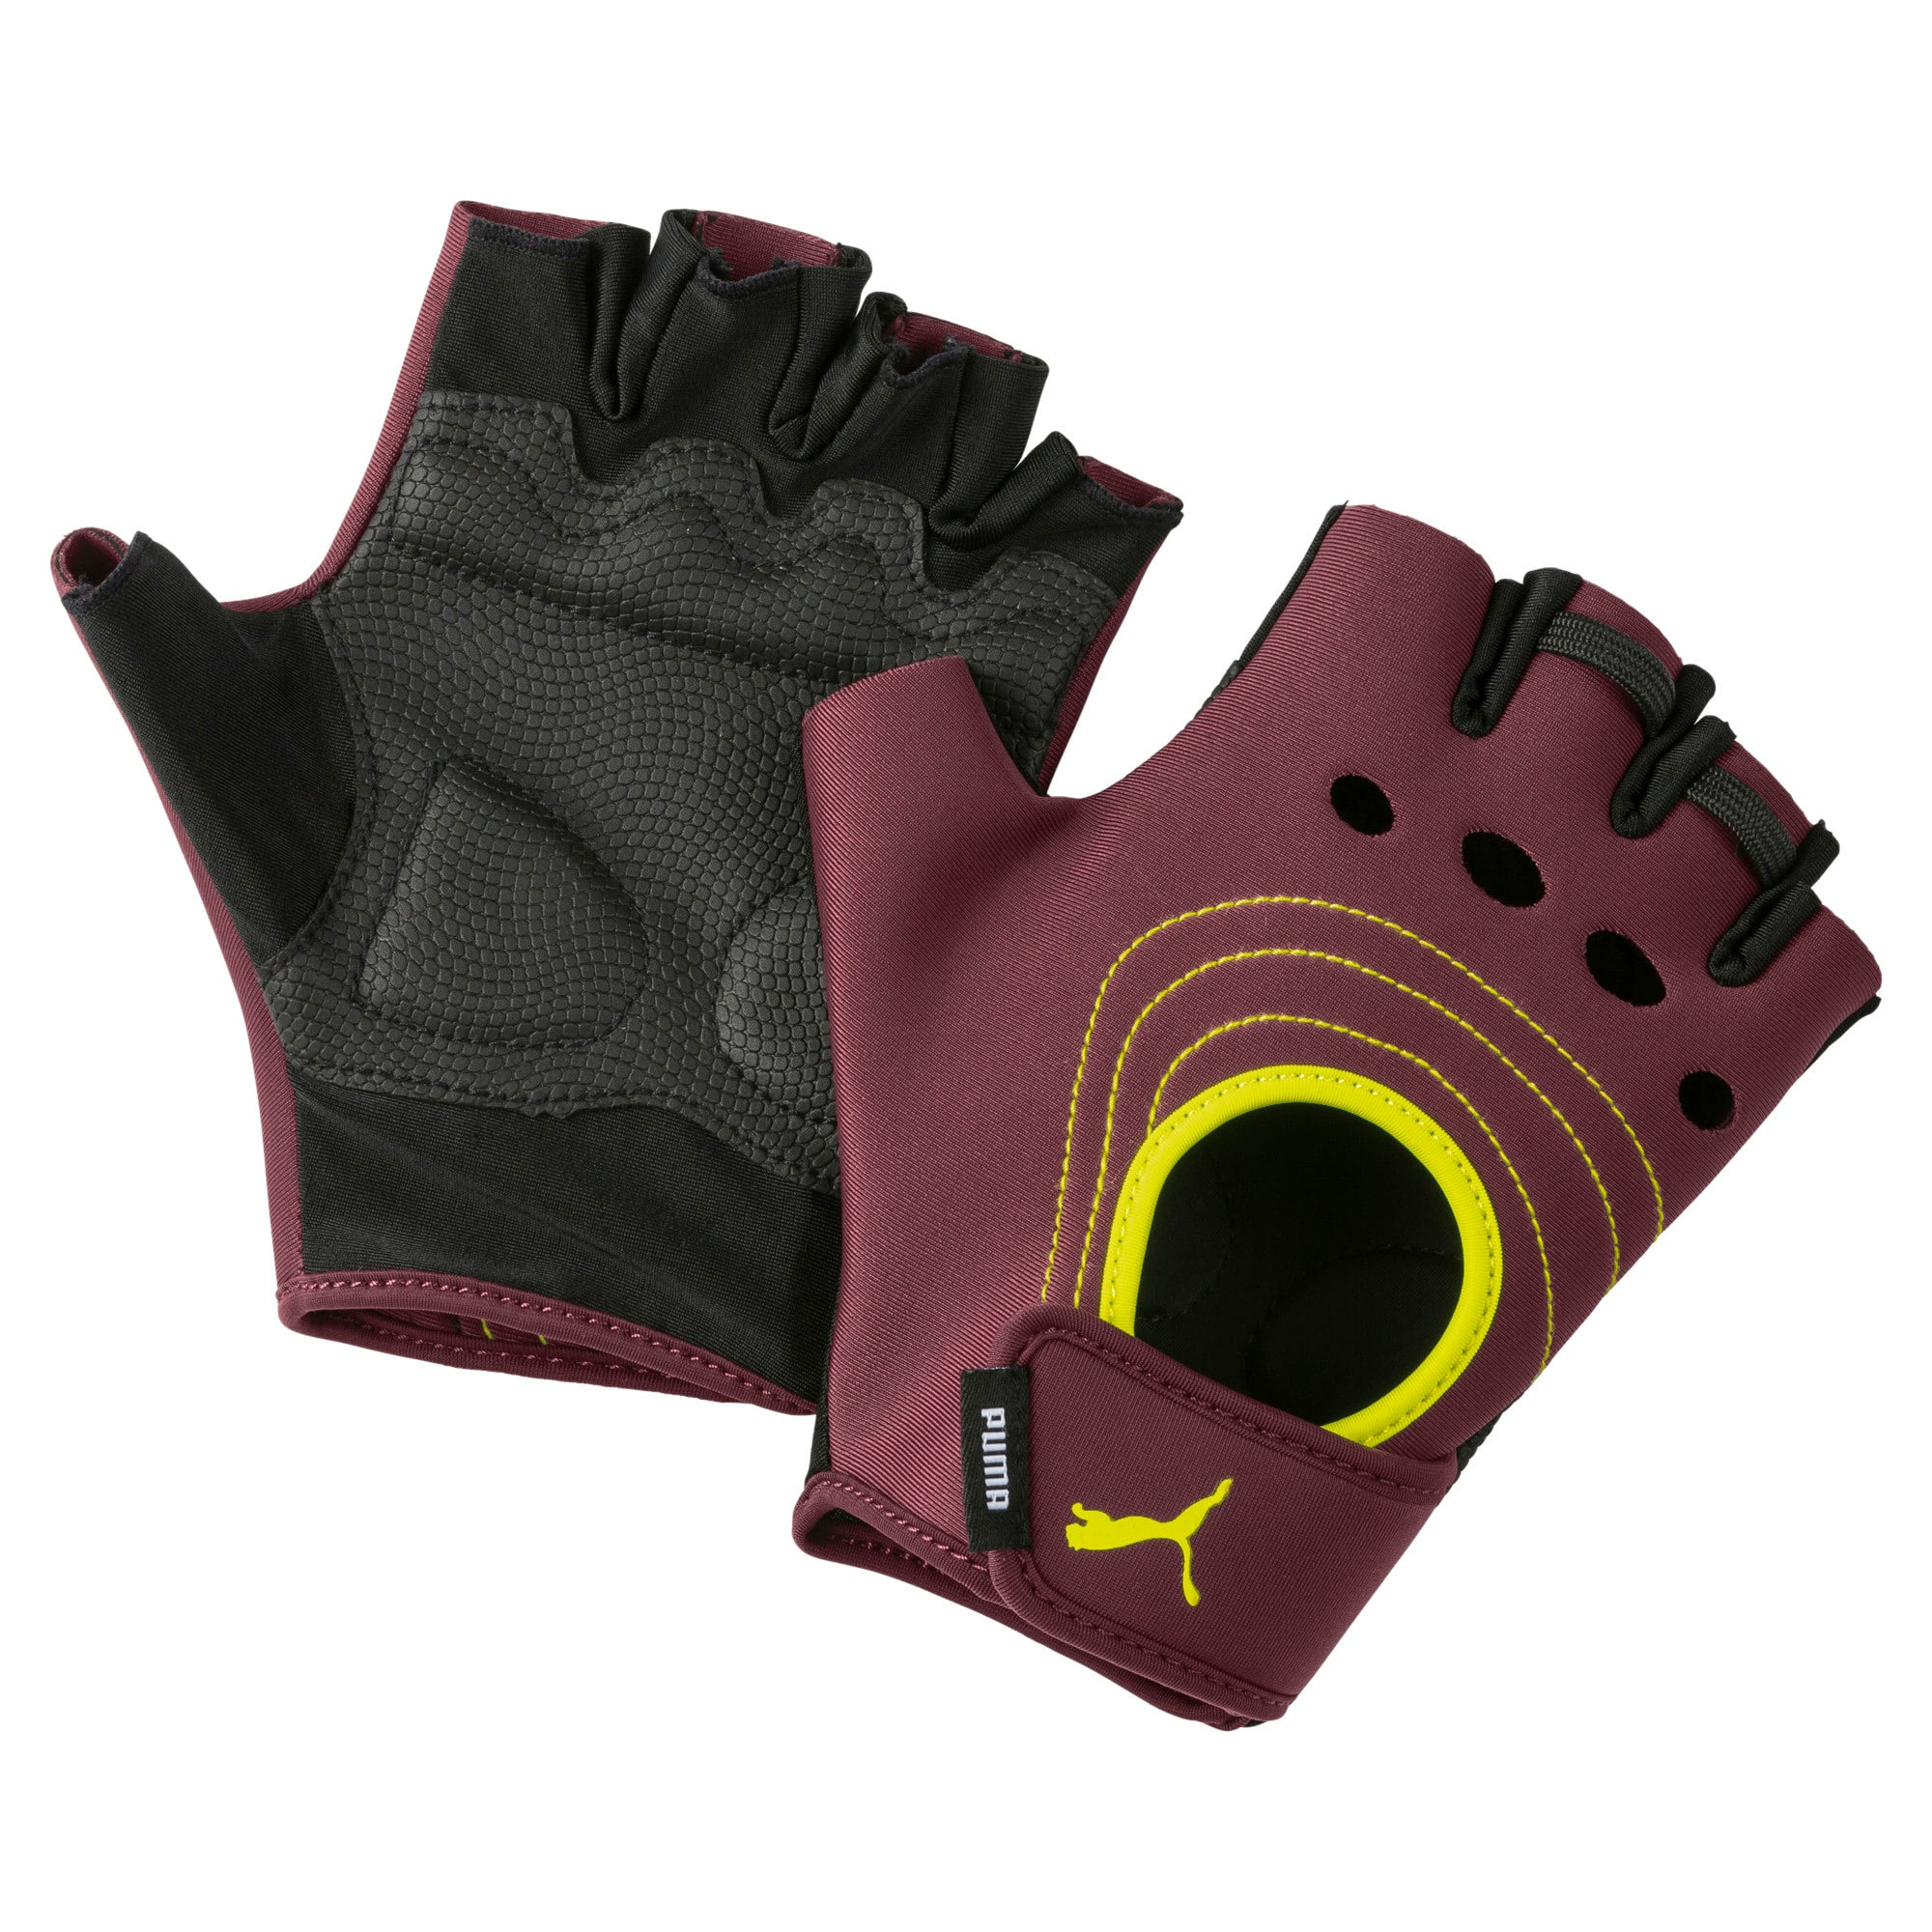 Thumbnail 1 of AT Women's Training Fingered Gloves, Vineyard Wine-Yellow Alert, medium